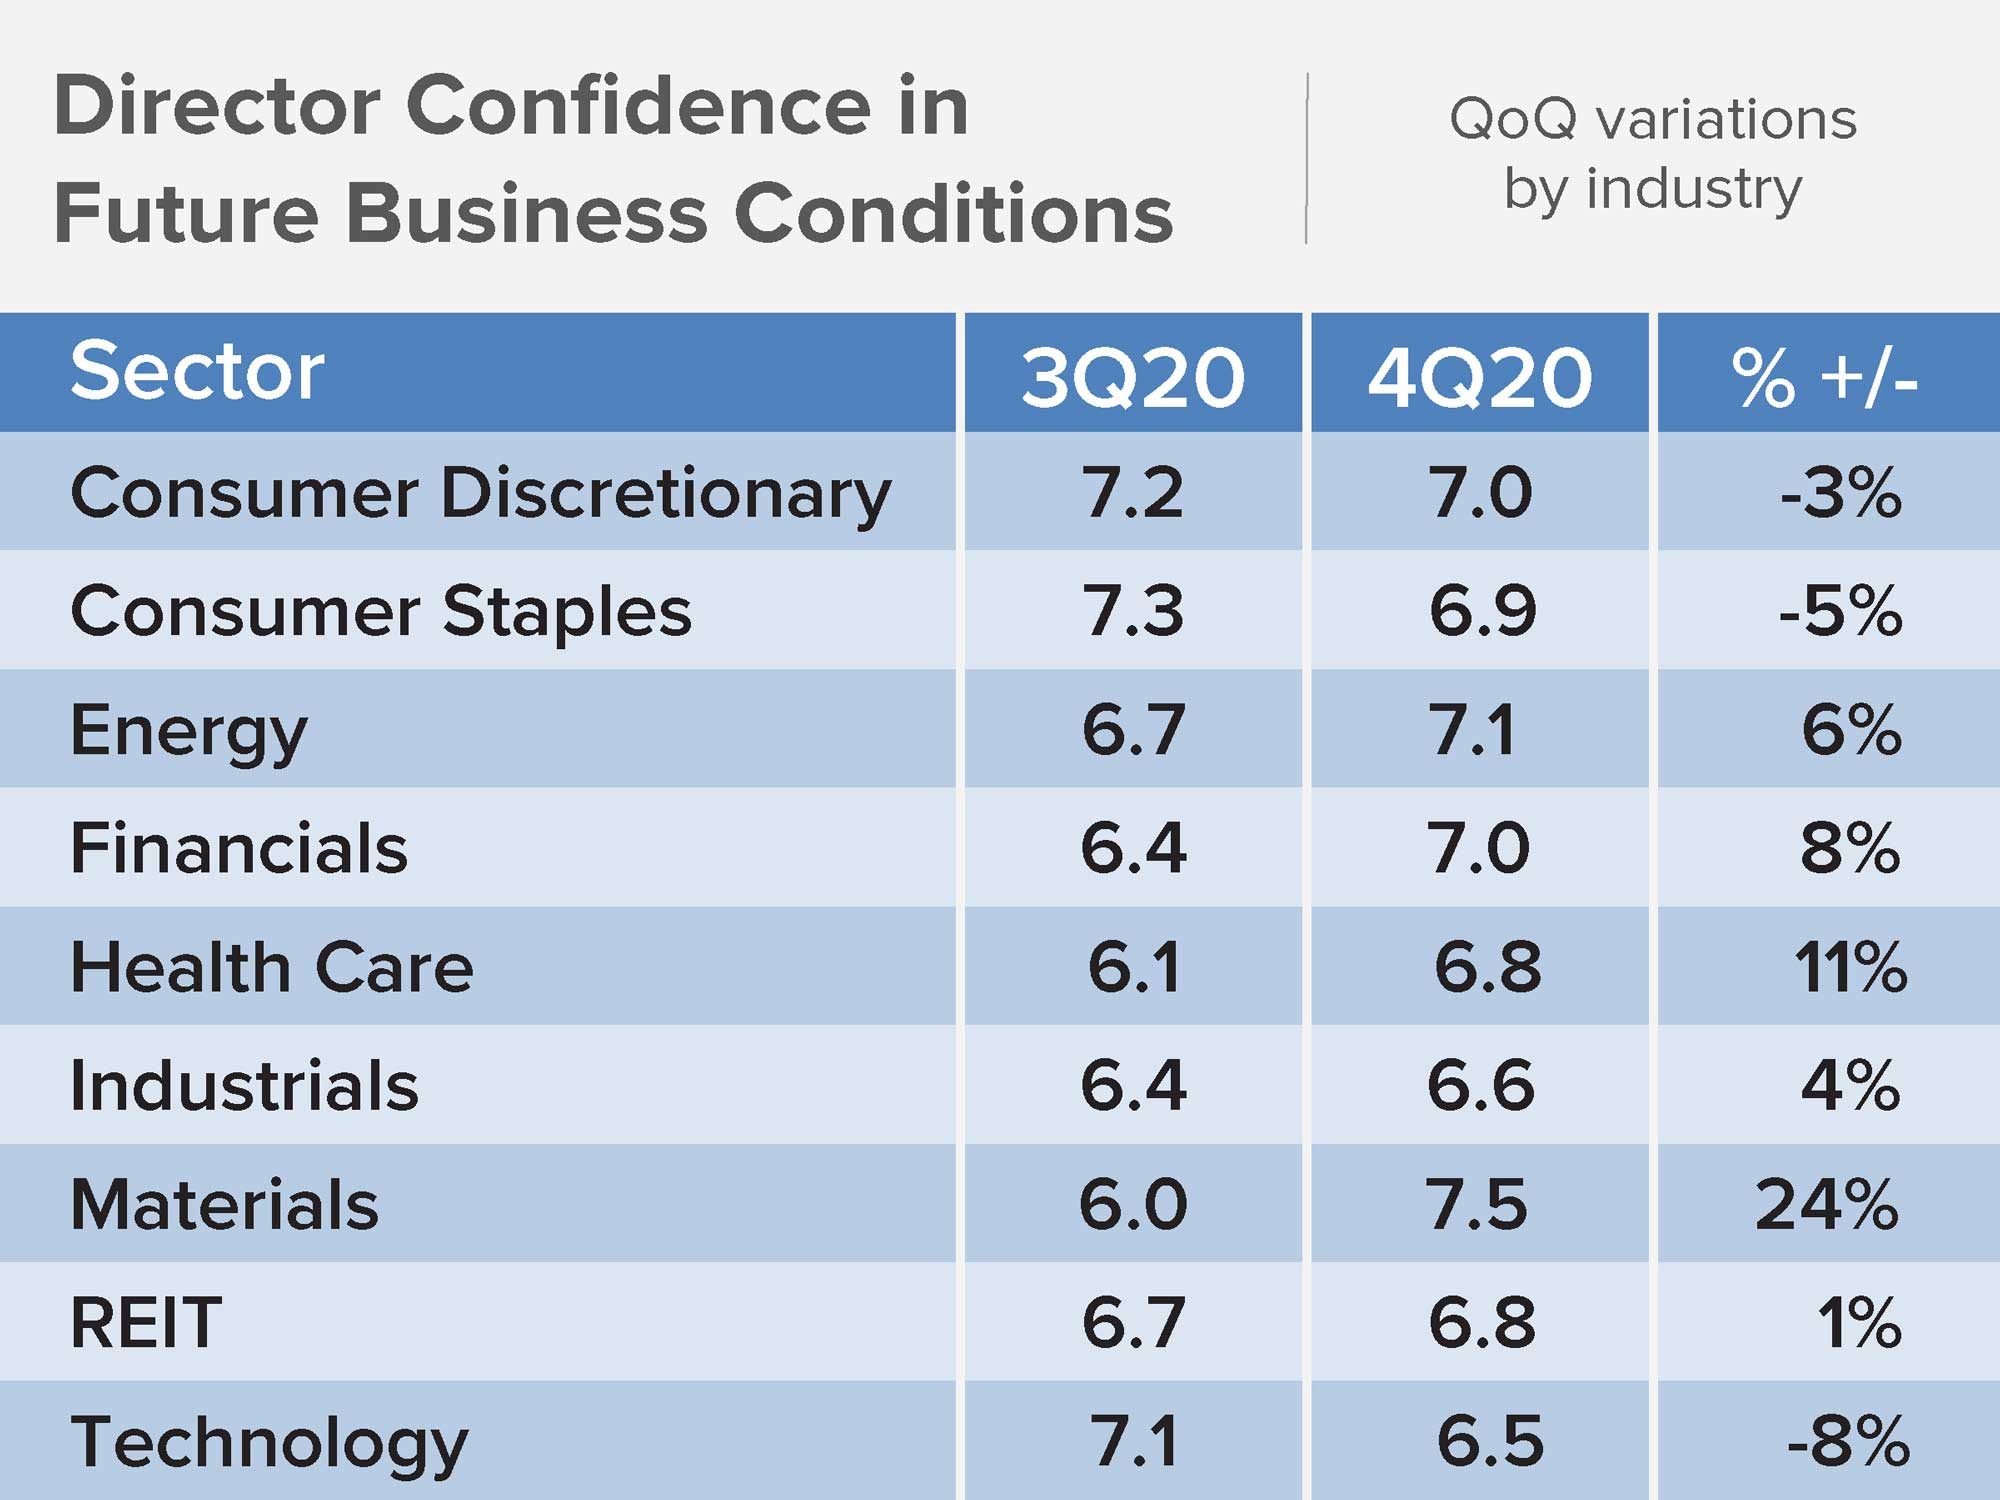 Table of Director Confidence in Future Business Conditions